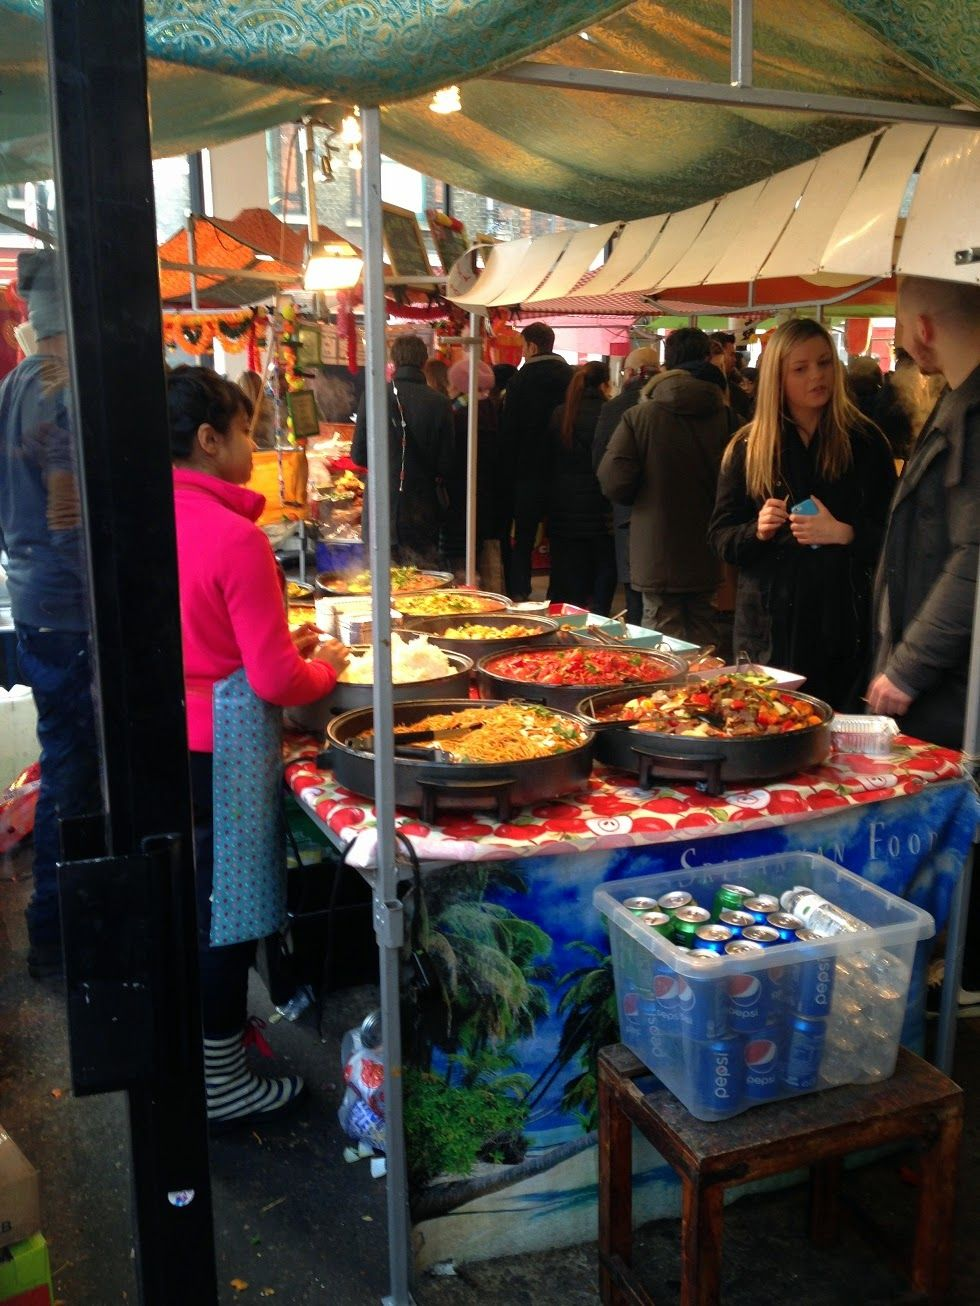 Indoor Food Market, Shoreditch Http://1.bp.blogspot.com